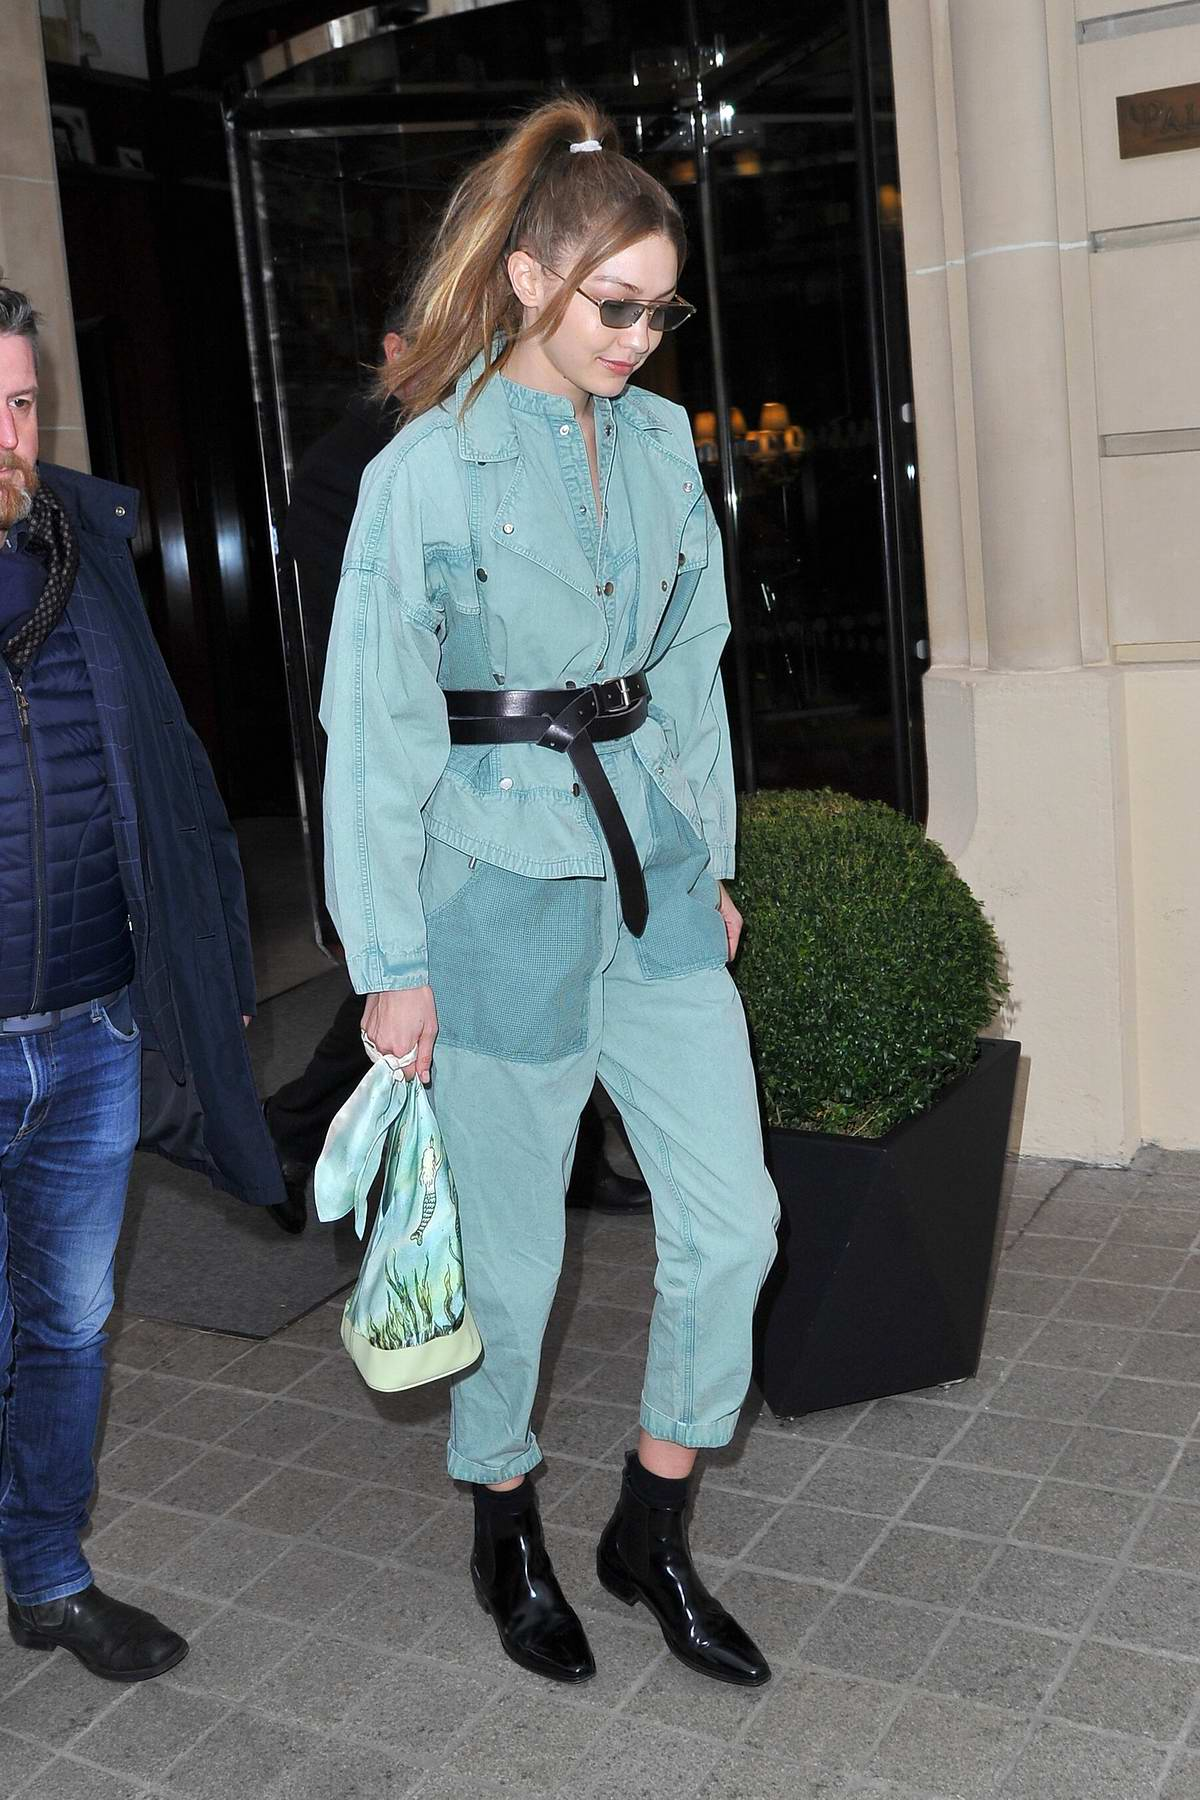 Gigi Hadid looks stylish in a mint green denim outfit as she leaves her hotel in Paris, France